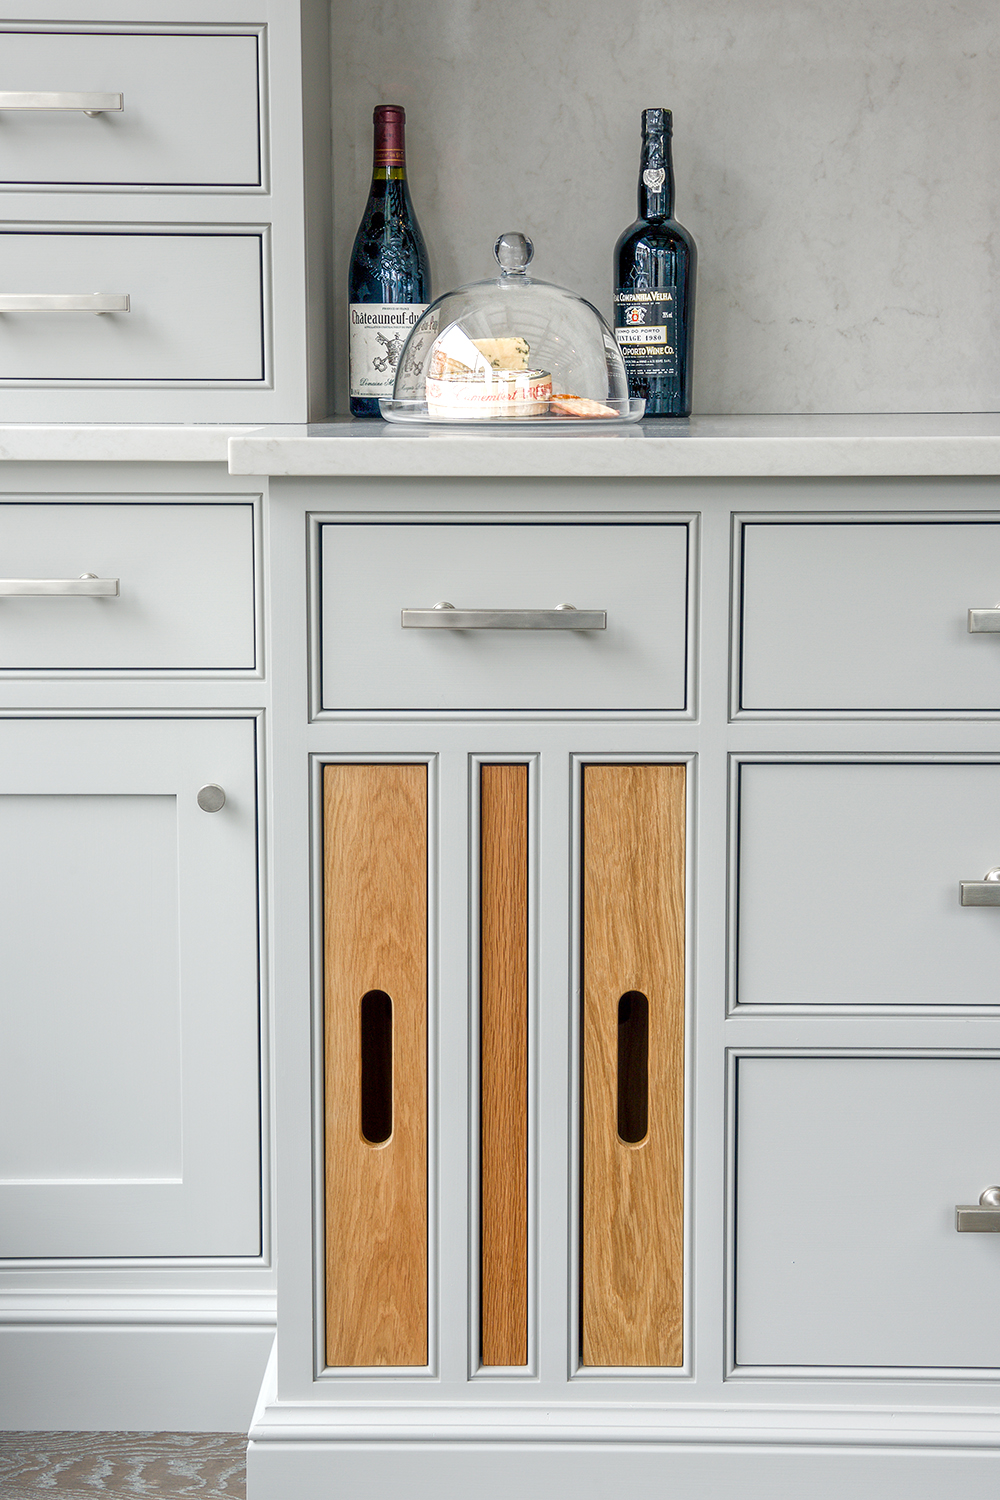 Bespoke kitchen painted in light grey with Caesarstone London Grey worktop and stainless steel handles and solid oak pull out trays built in with one pulled out.